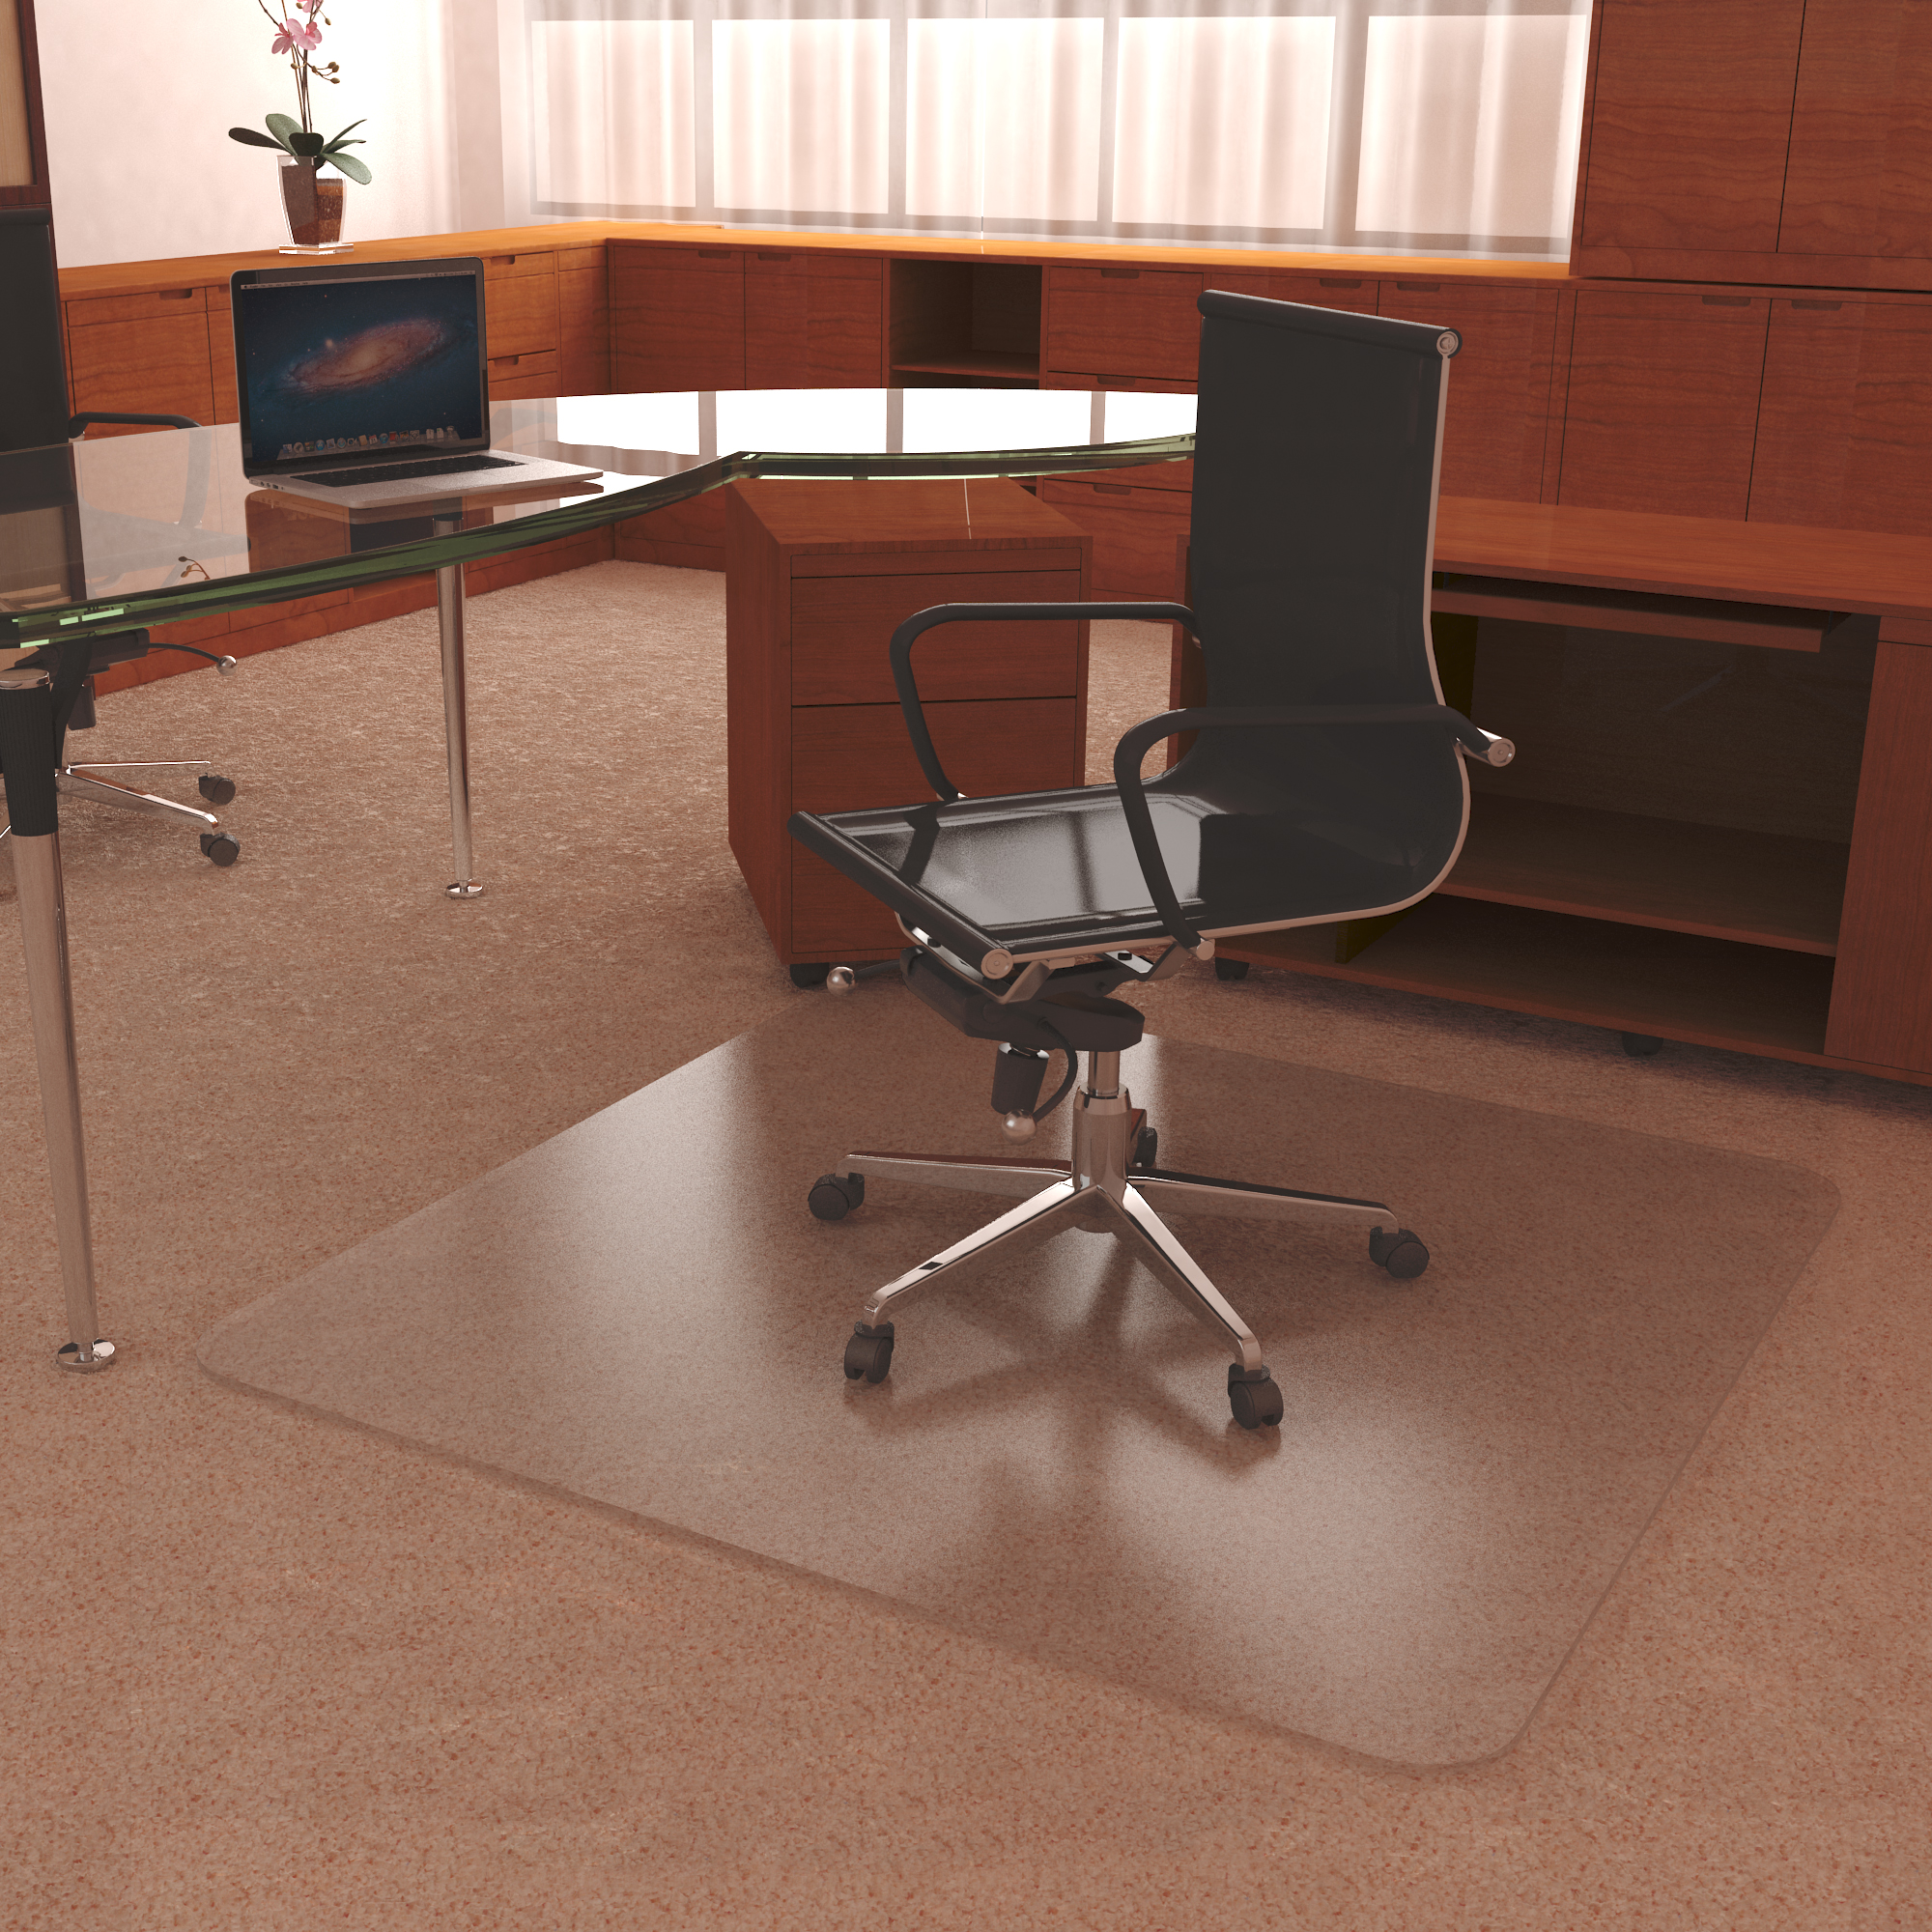 carpet office rolling size surface donatzinfo computer hardwood for mat desk rug l hard wood chairs design chair of plastic colored mats under seat floor roller clear full x